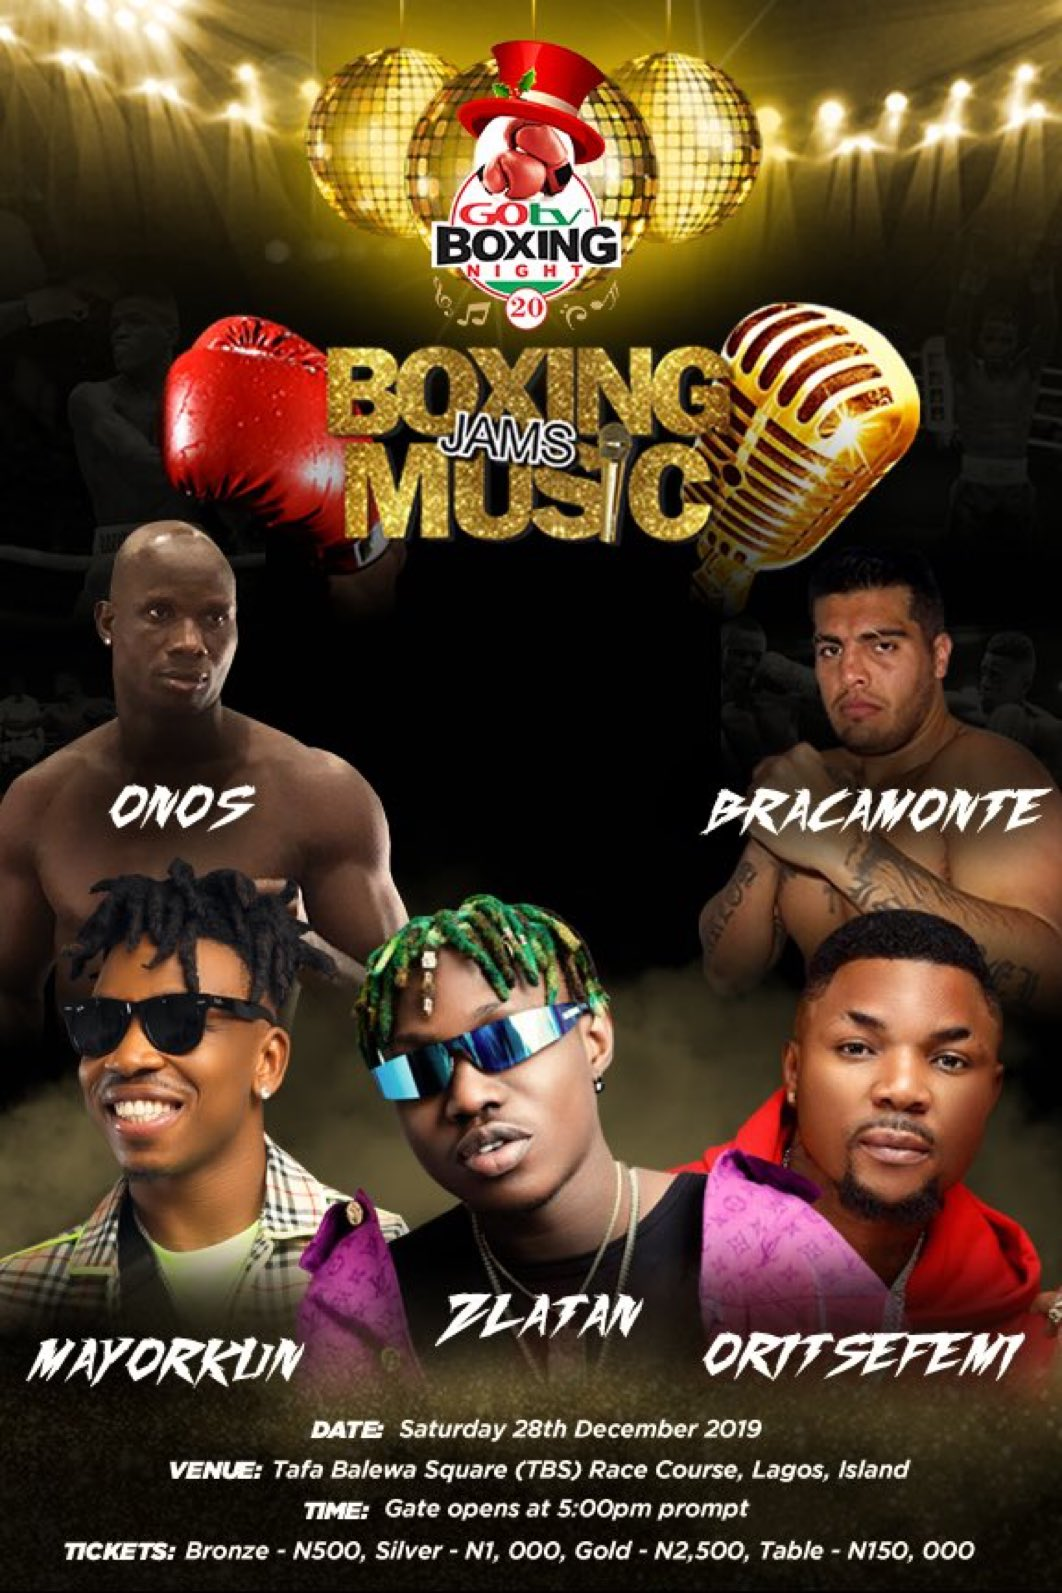 GOtv Boxing Night 20: Argentina's Chiquito Vows to Beat Godzilla To WBF Title